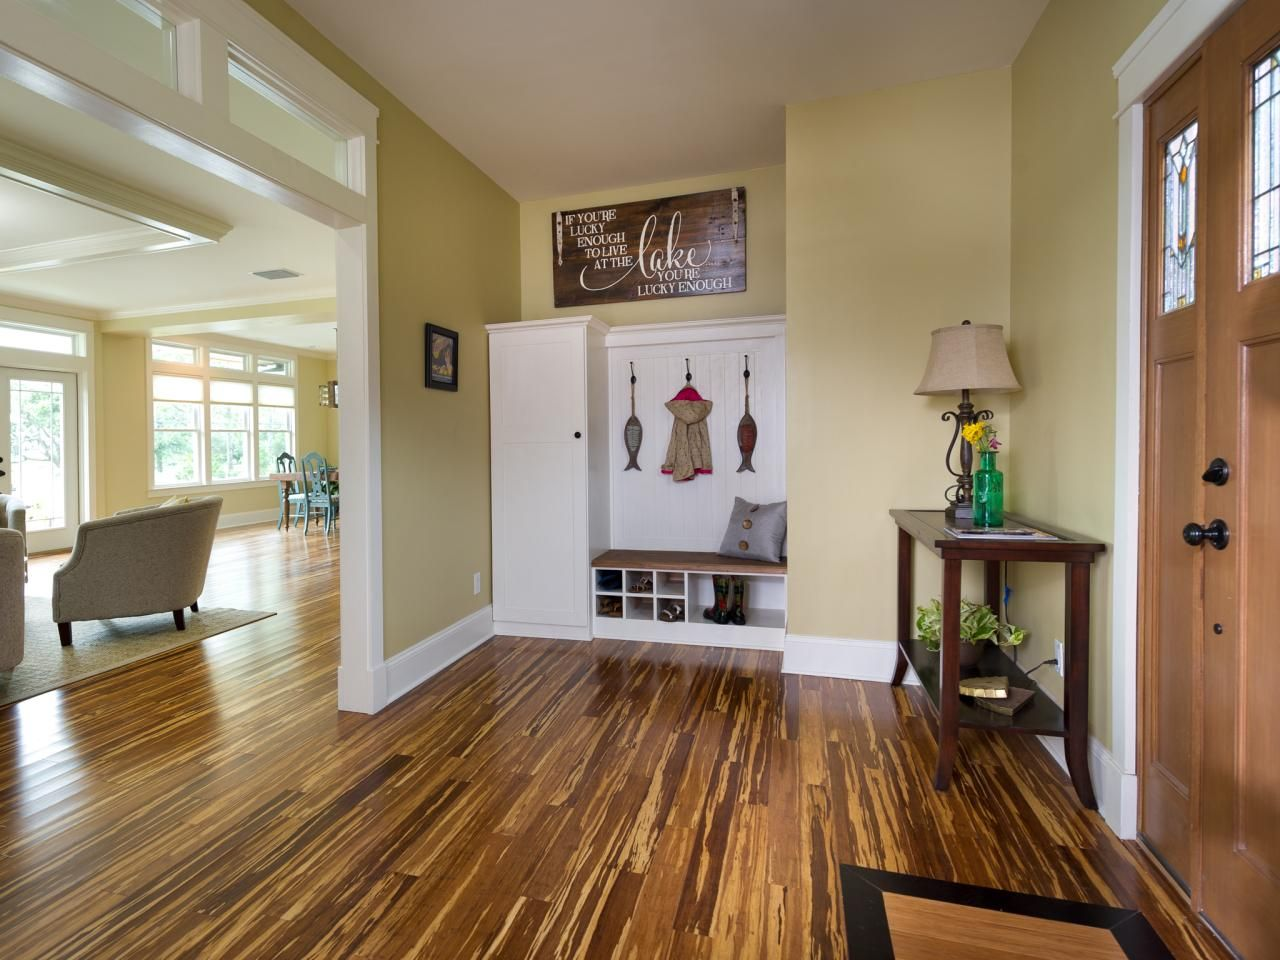 Foyer Pictures From Blog Cabin 2014  Foyers Diy Network And Cabin Pleasing Living Room Candidate Review